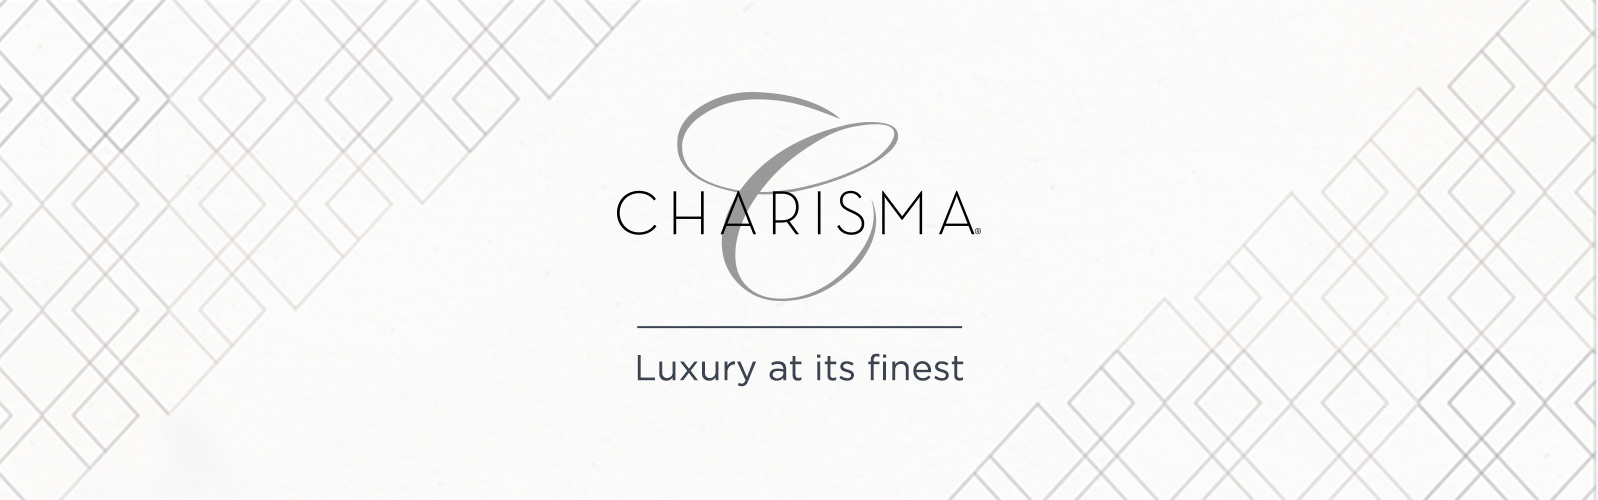 Charisma - Luxury at its finest